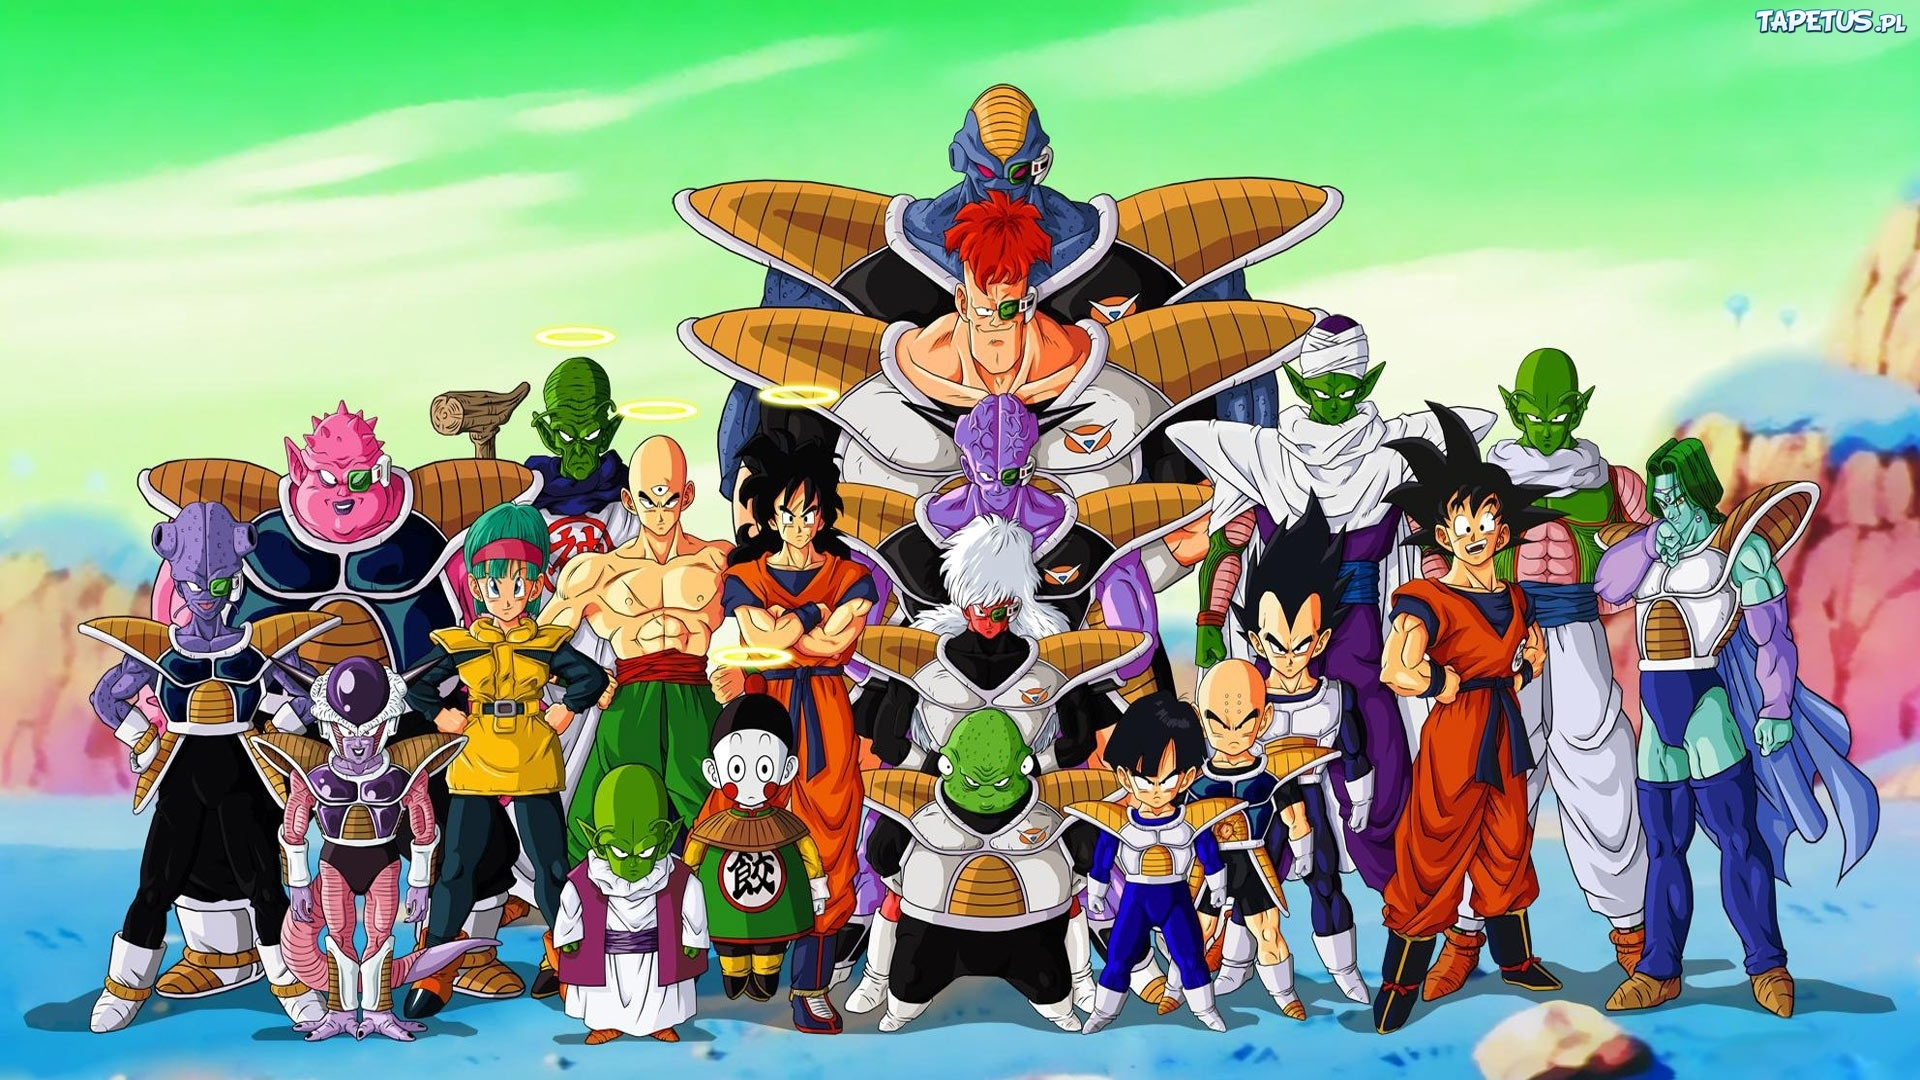 Son goku dragon ball image 100 - Dragon ball z goku son ...